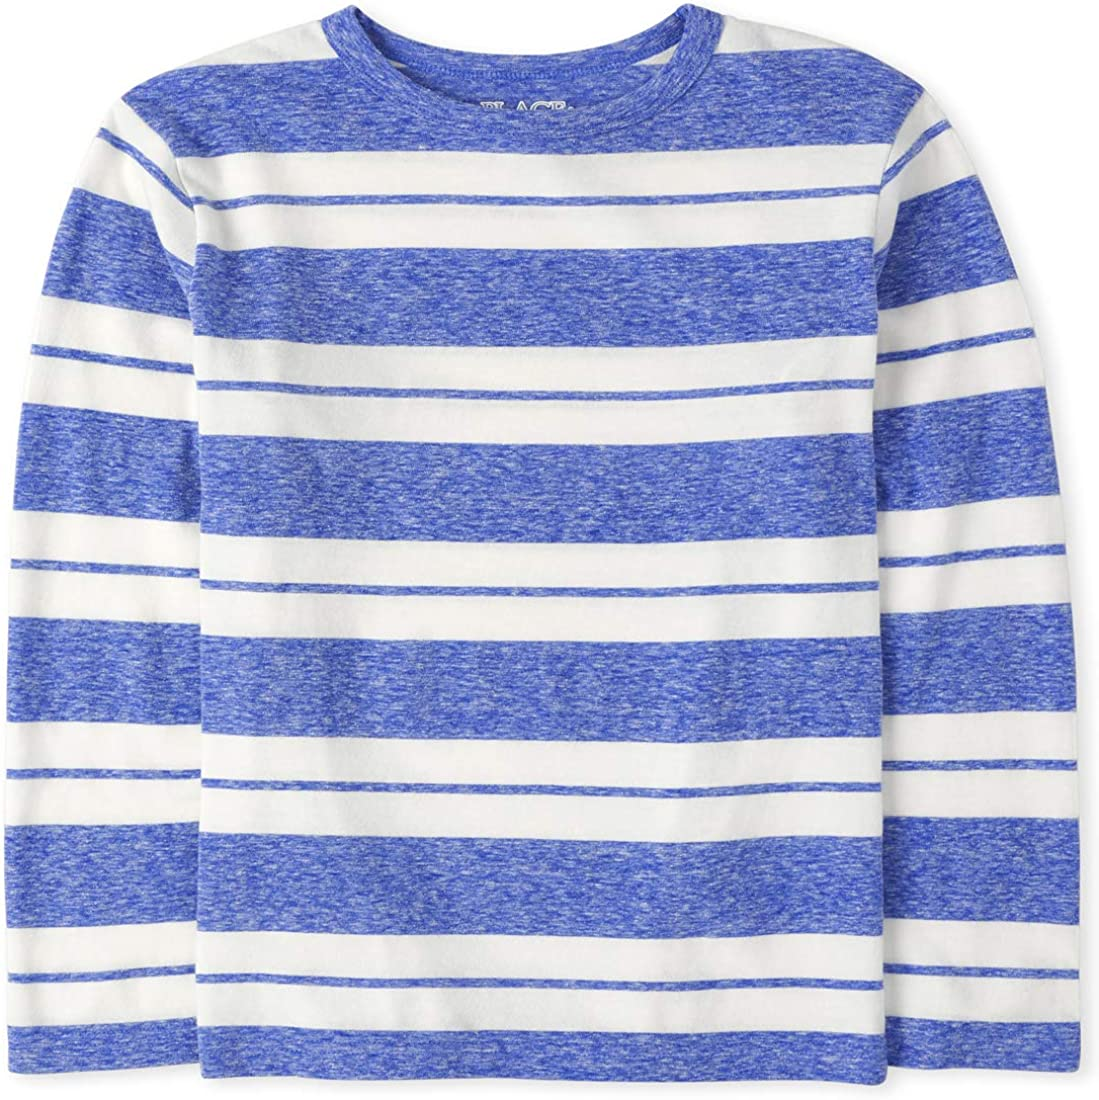 The Children's Place Boys' Striped Top